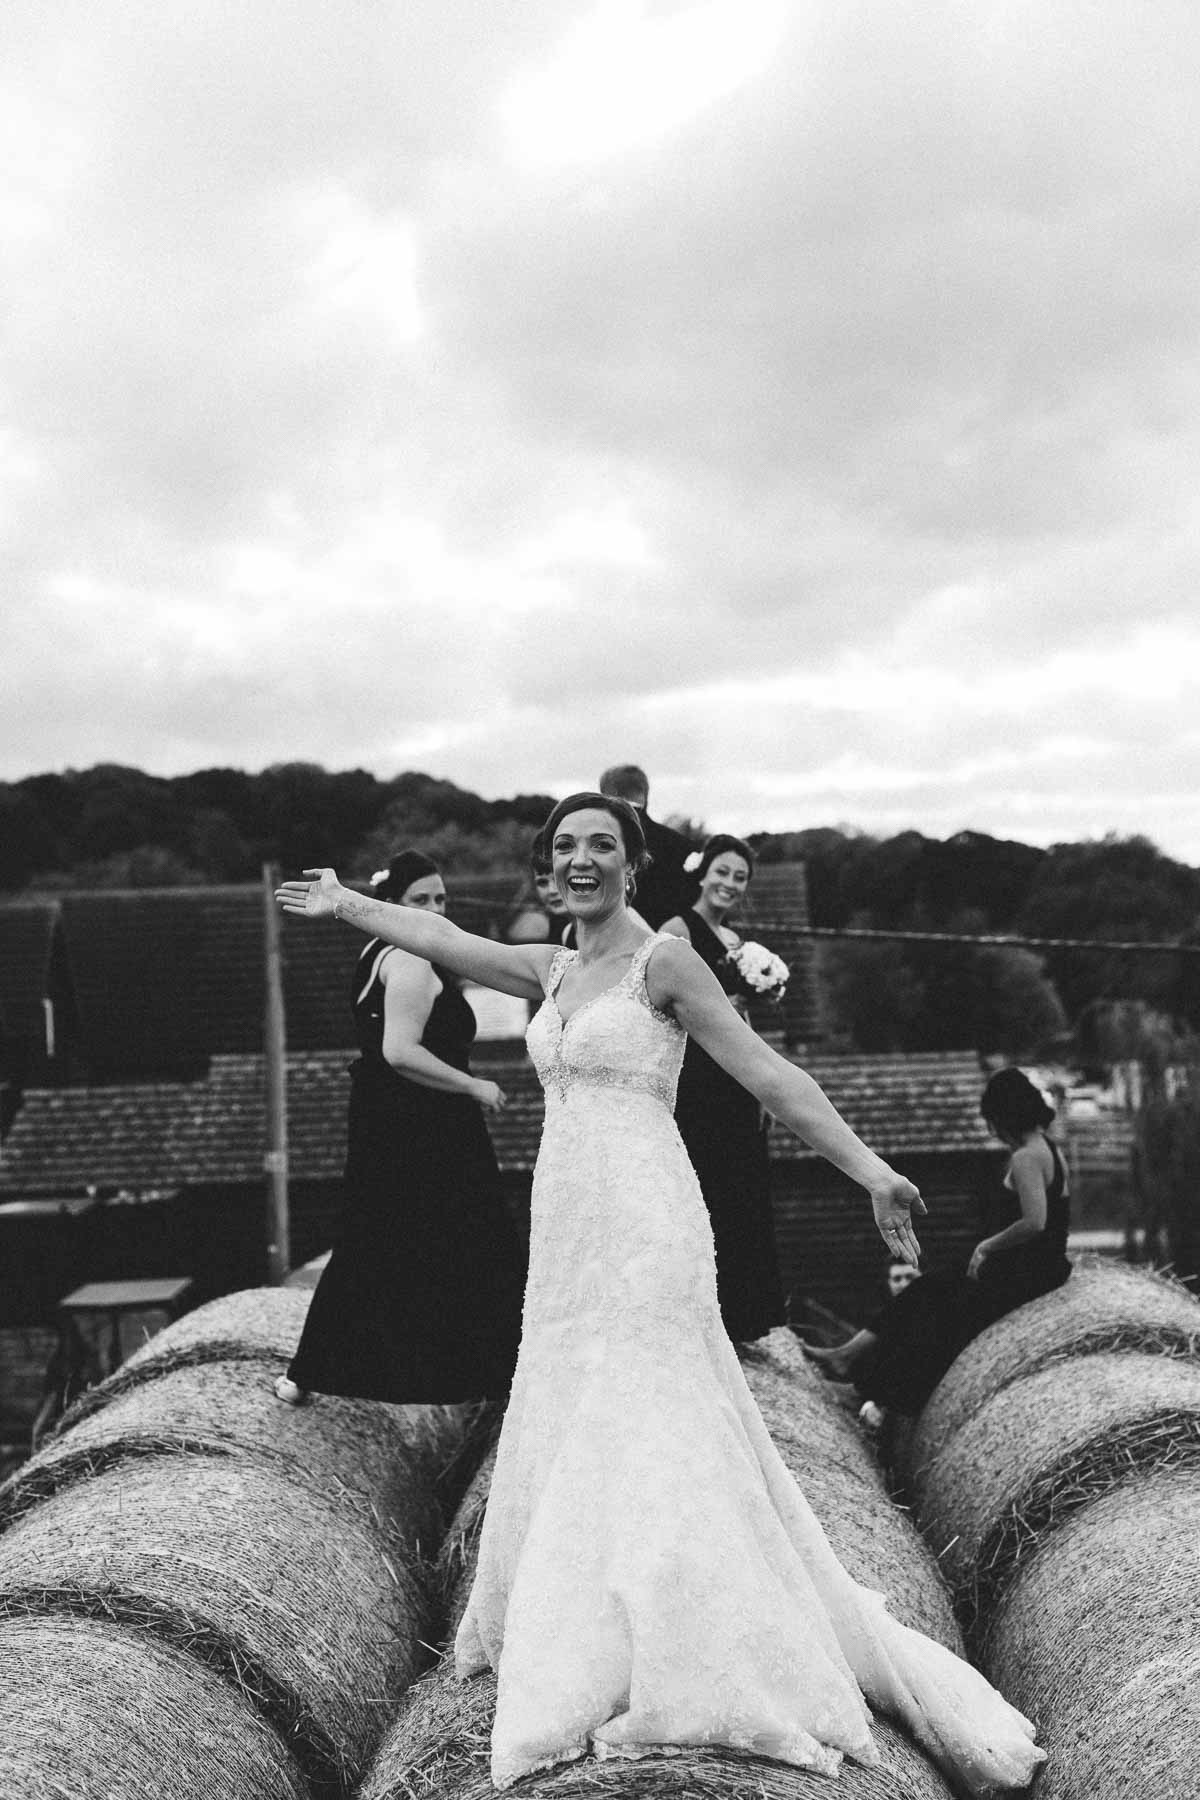 Wood Farm wedding photography of the bridal party on top of hay bales